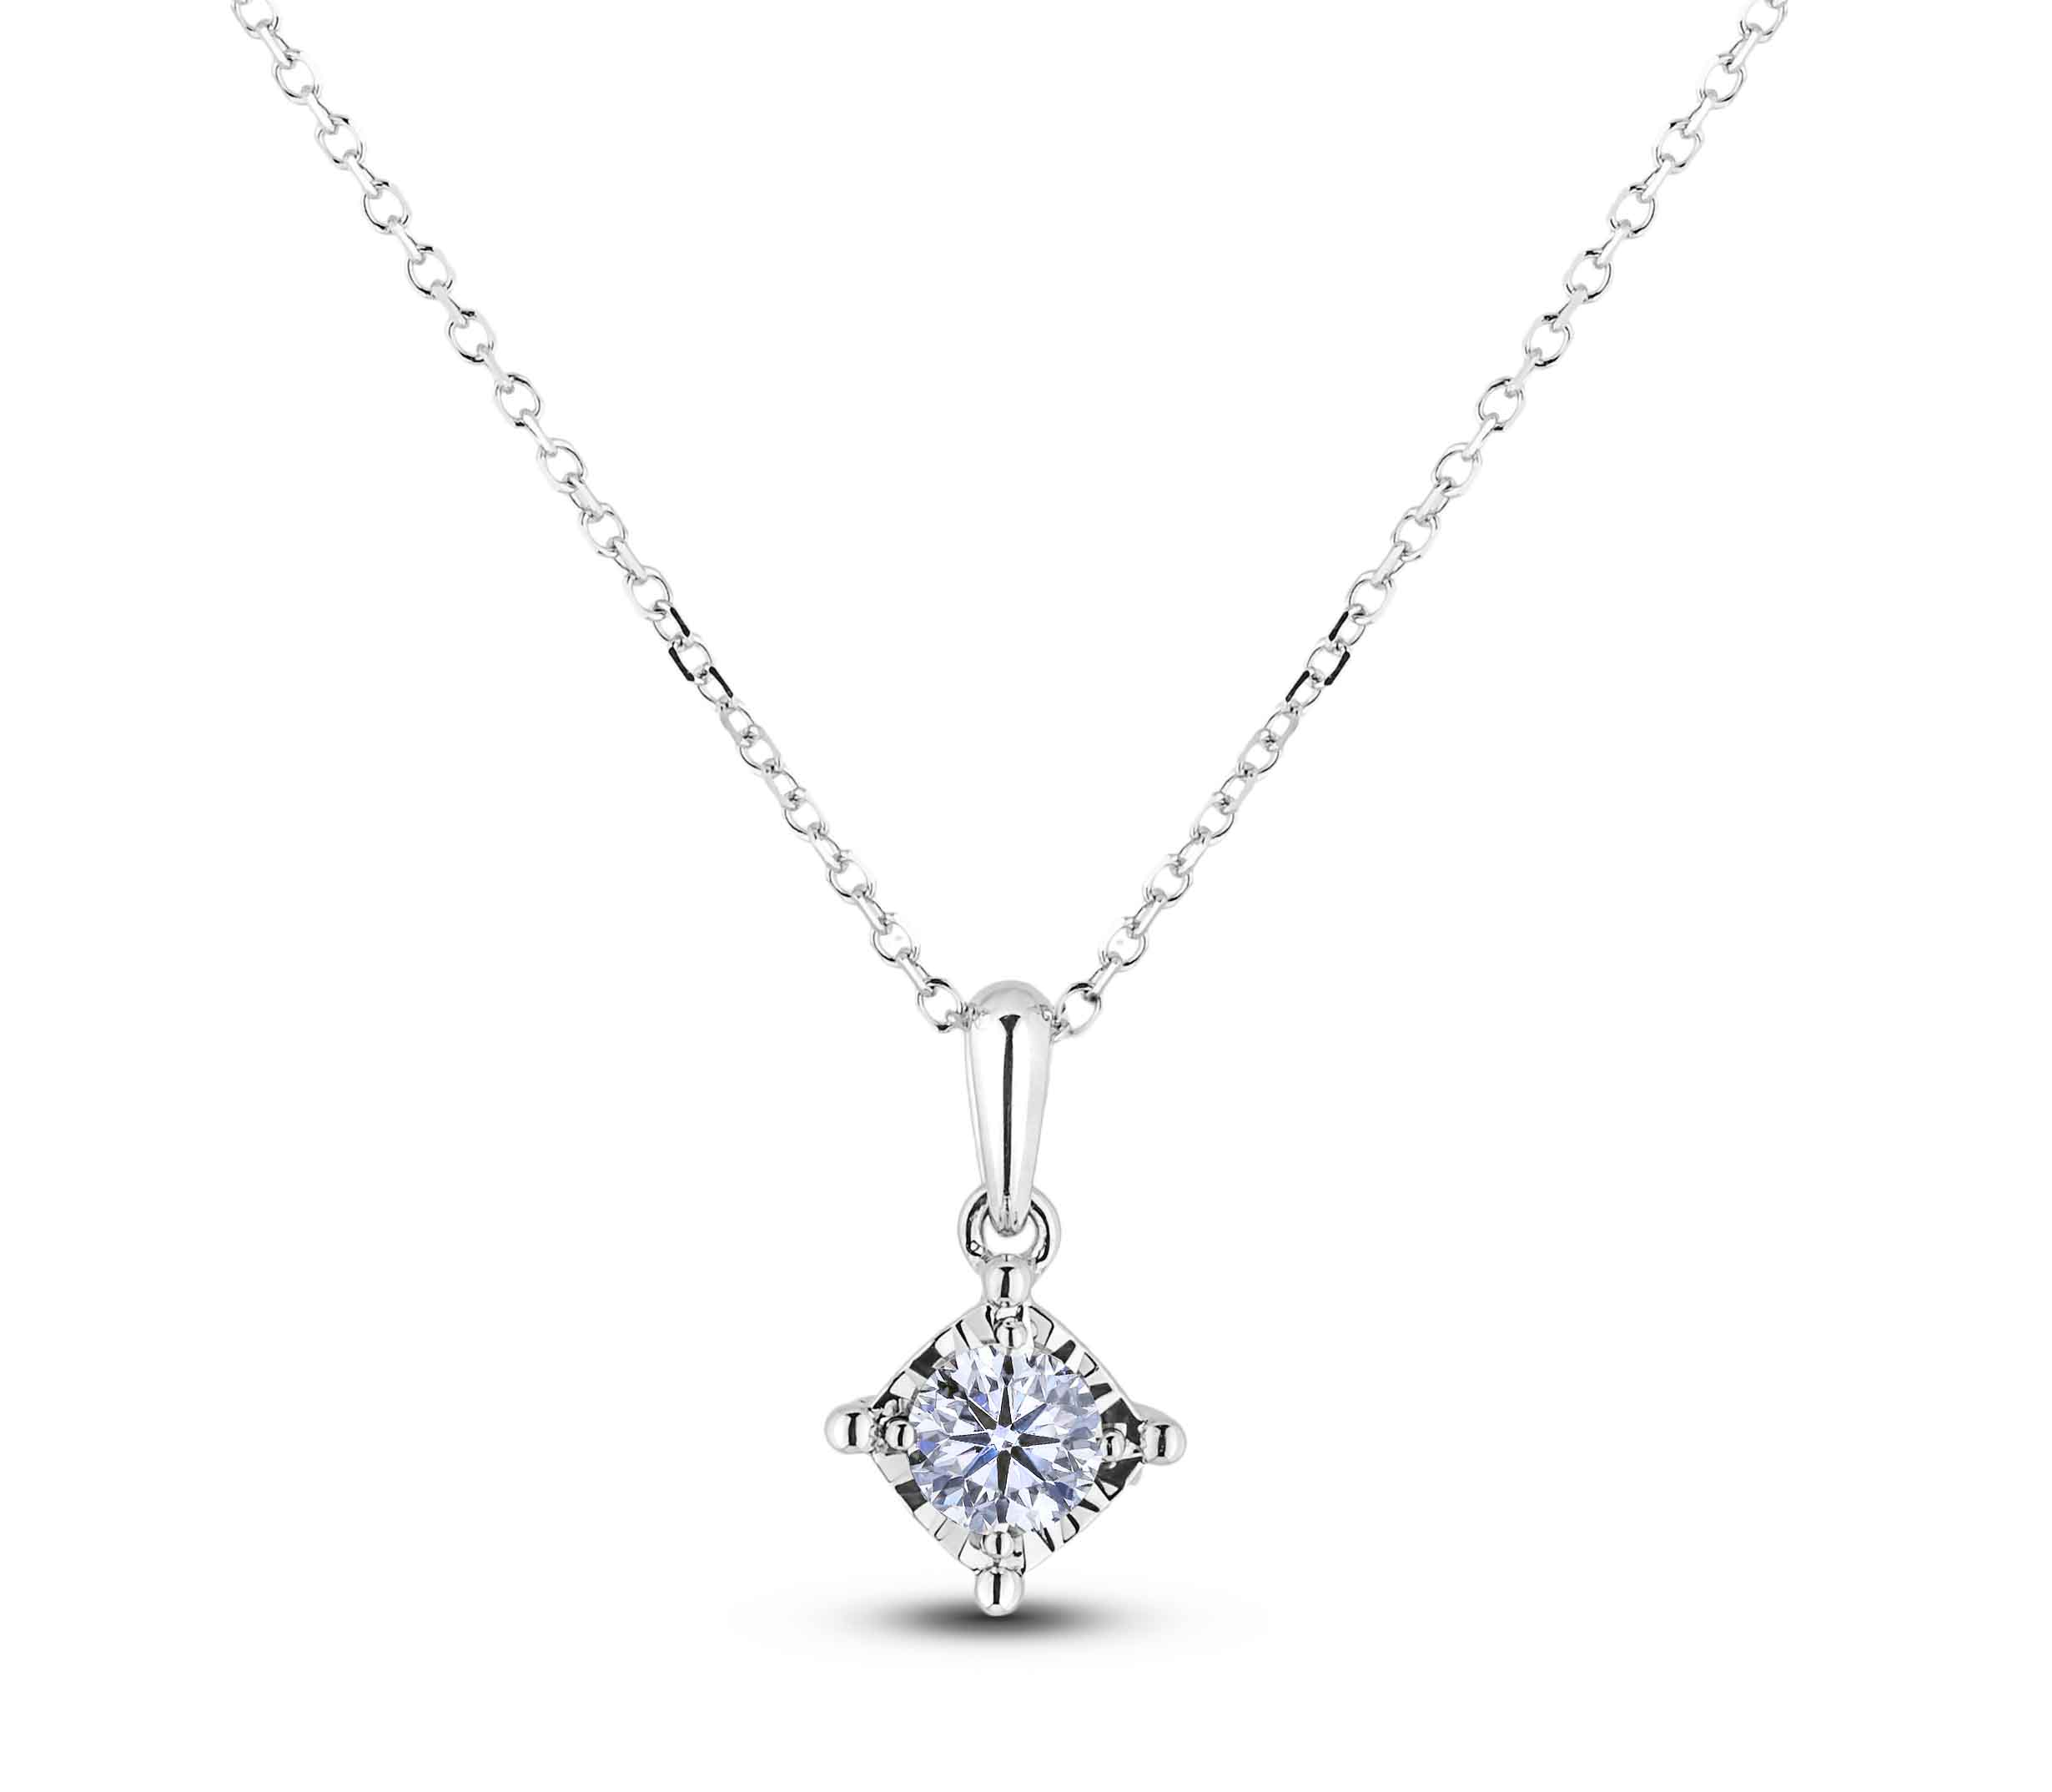 Diamond Solitaire Pendants AFCP1630020 (Pendants)